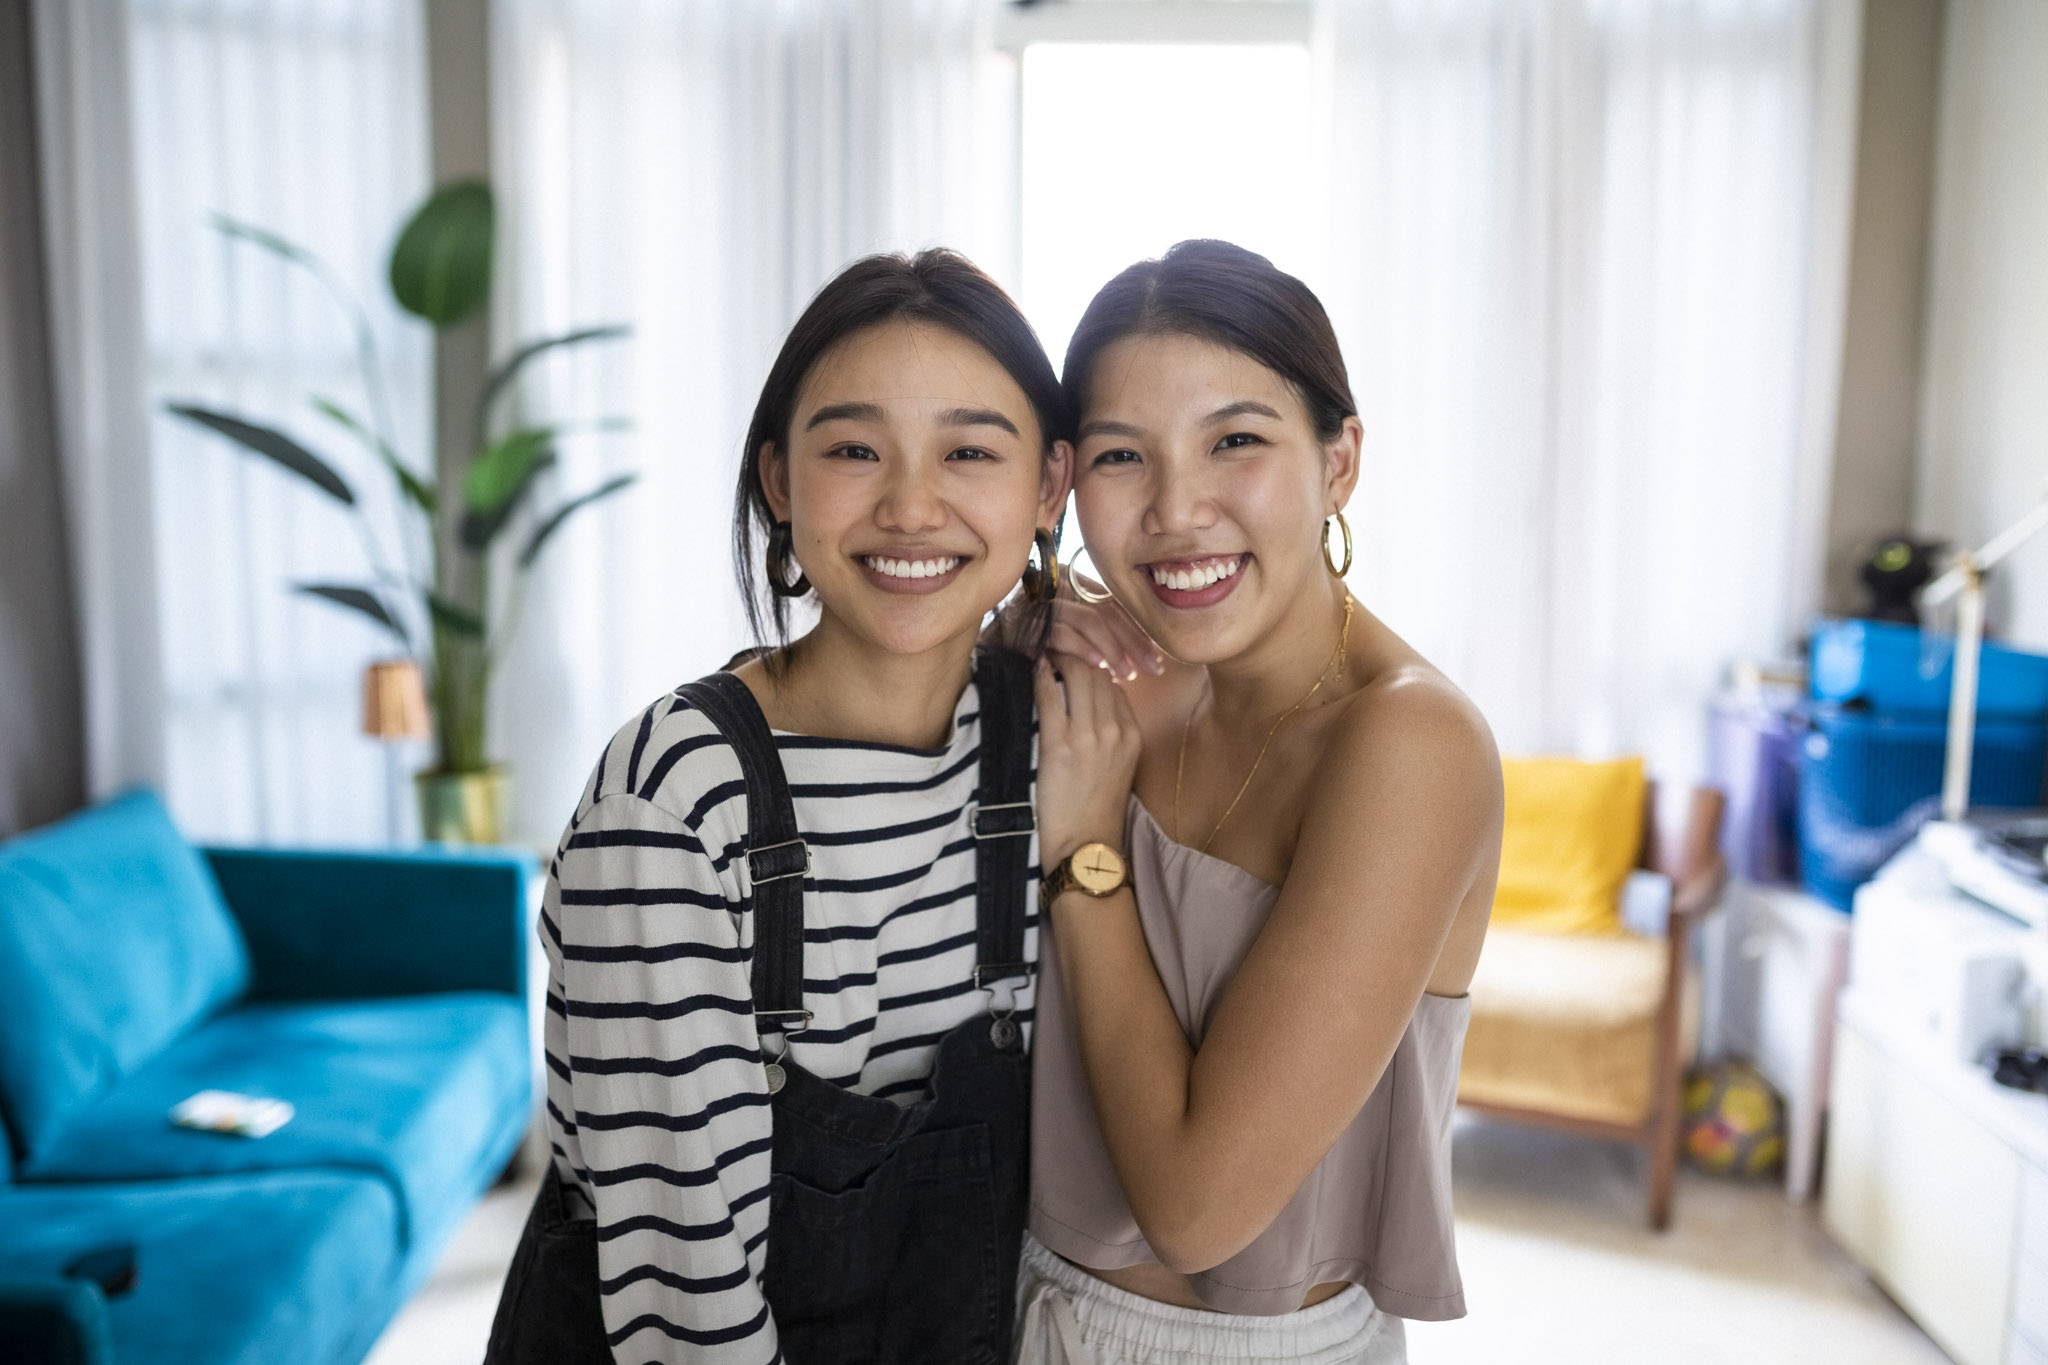 Serena and Gabriela from Oh, Culture in their home smiling. Serena is wearing a striped long-sleeved shirt. Gabriela is wearing a nude crop top.